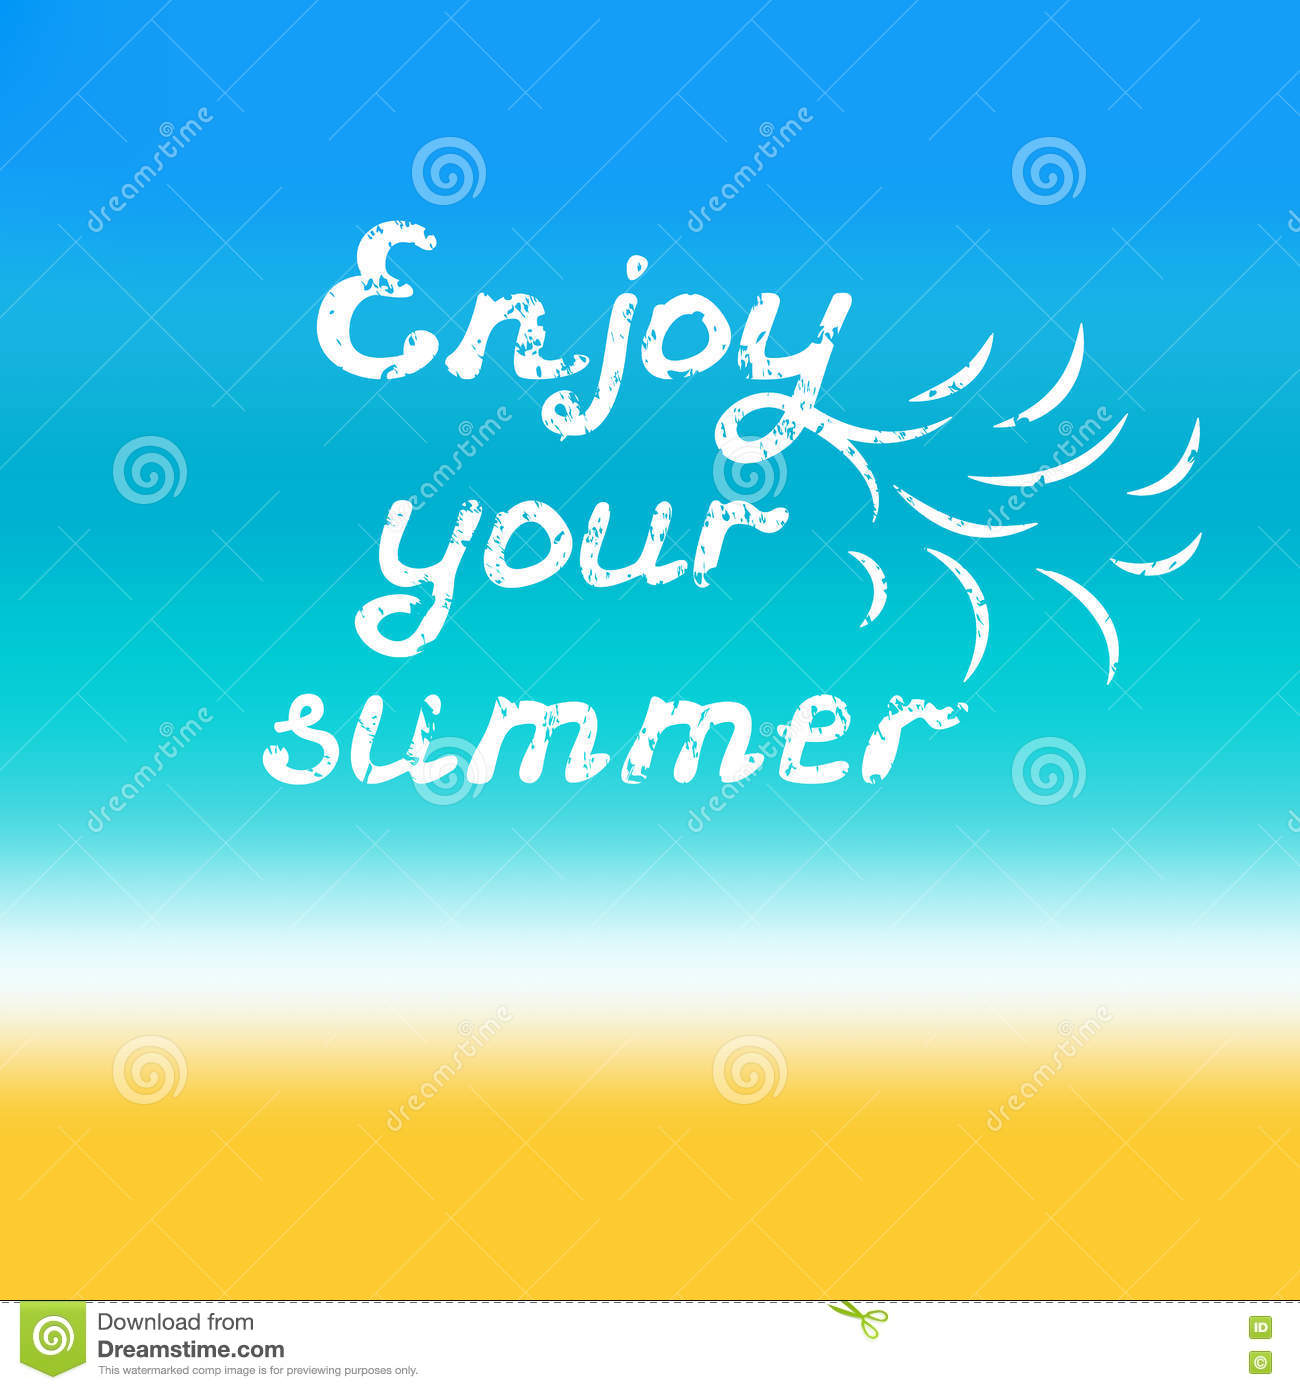 enjoy your summer hand lettering calligraphy grunge style quote